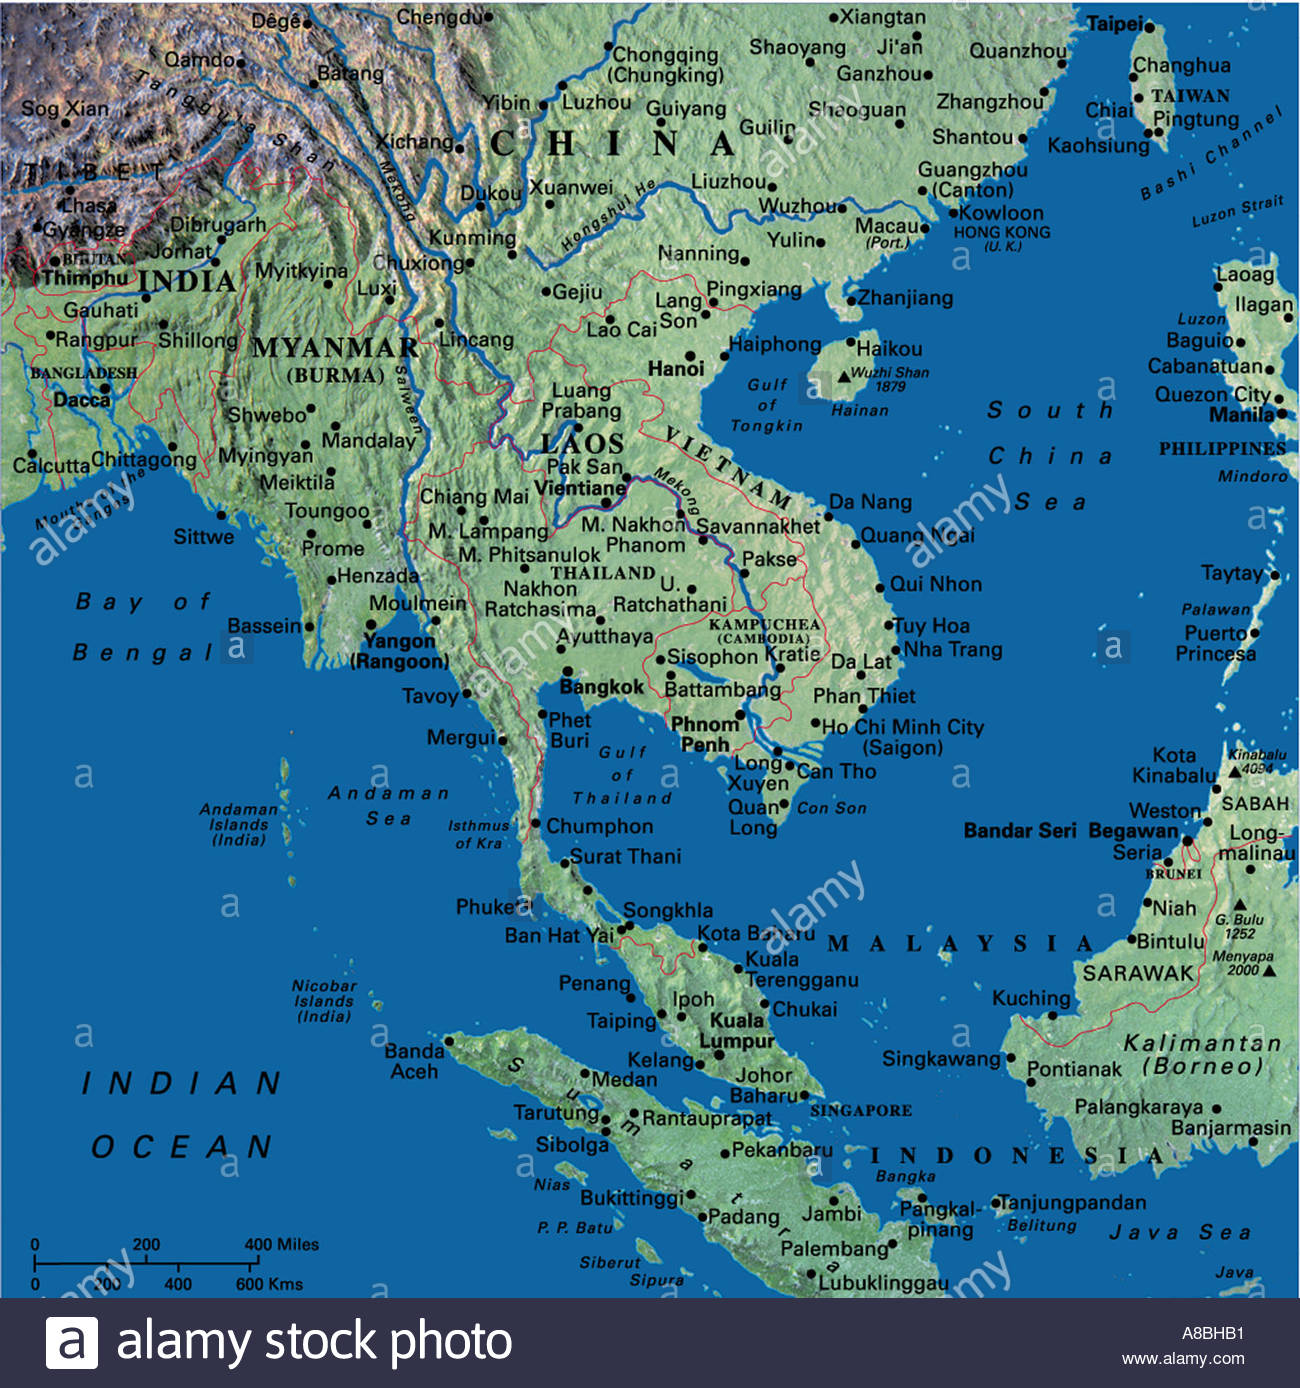 Map Of Thailand Stock Photos & Map Of Thailand Stock Images - Alamy